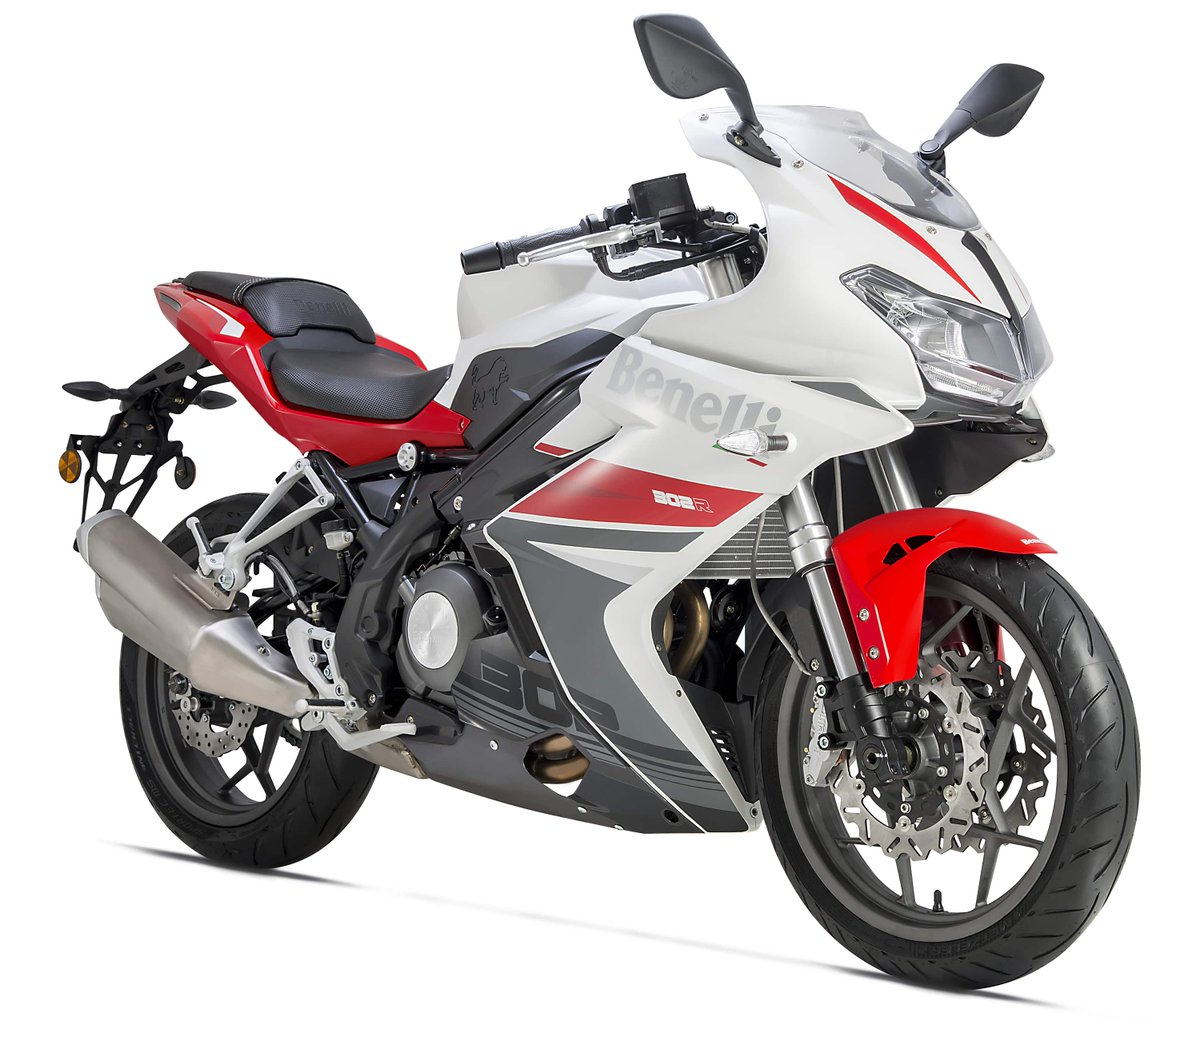 #DSK #Benelli #302R launching in July 2017 in #India; bookings started at authorized dealerships across the nation  http:// bit.ly/2slE5sF  &nbsp;  <br>http://pic.twitter.com/KA7VVJM38Y